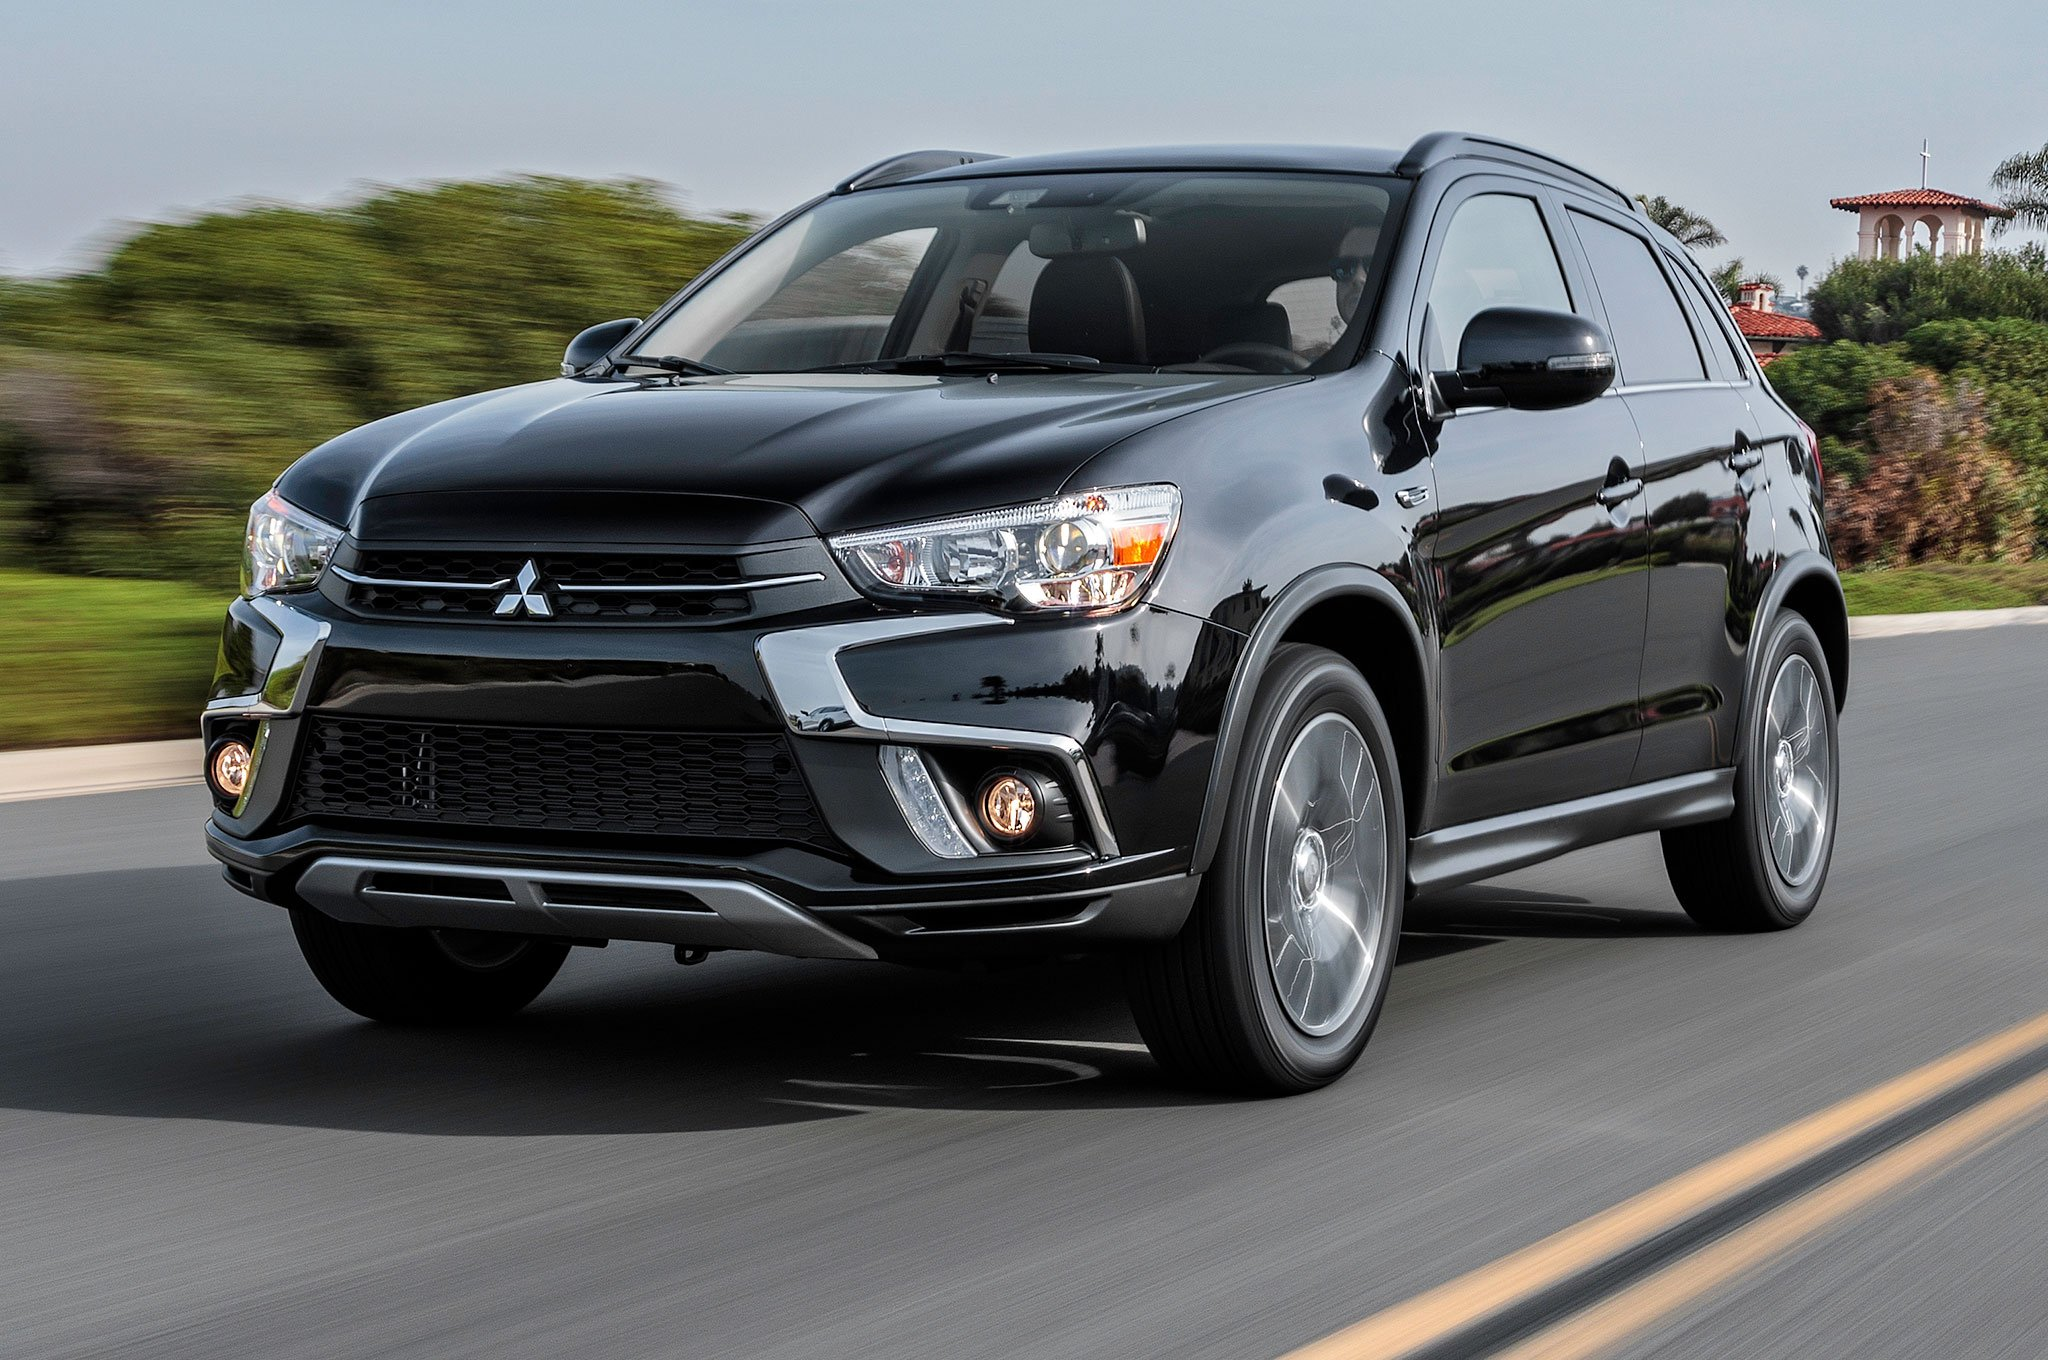 Best-selling cars in Canada 2018 - Mitsubishi